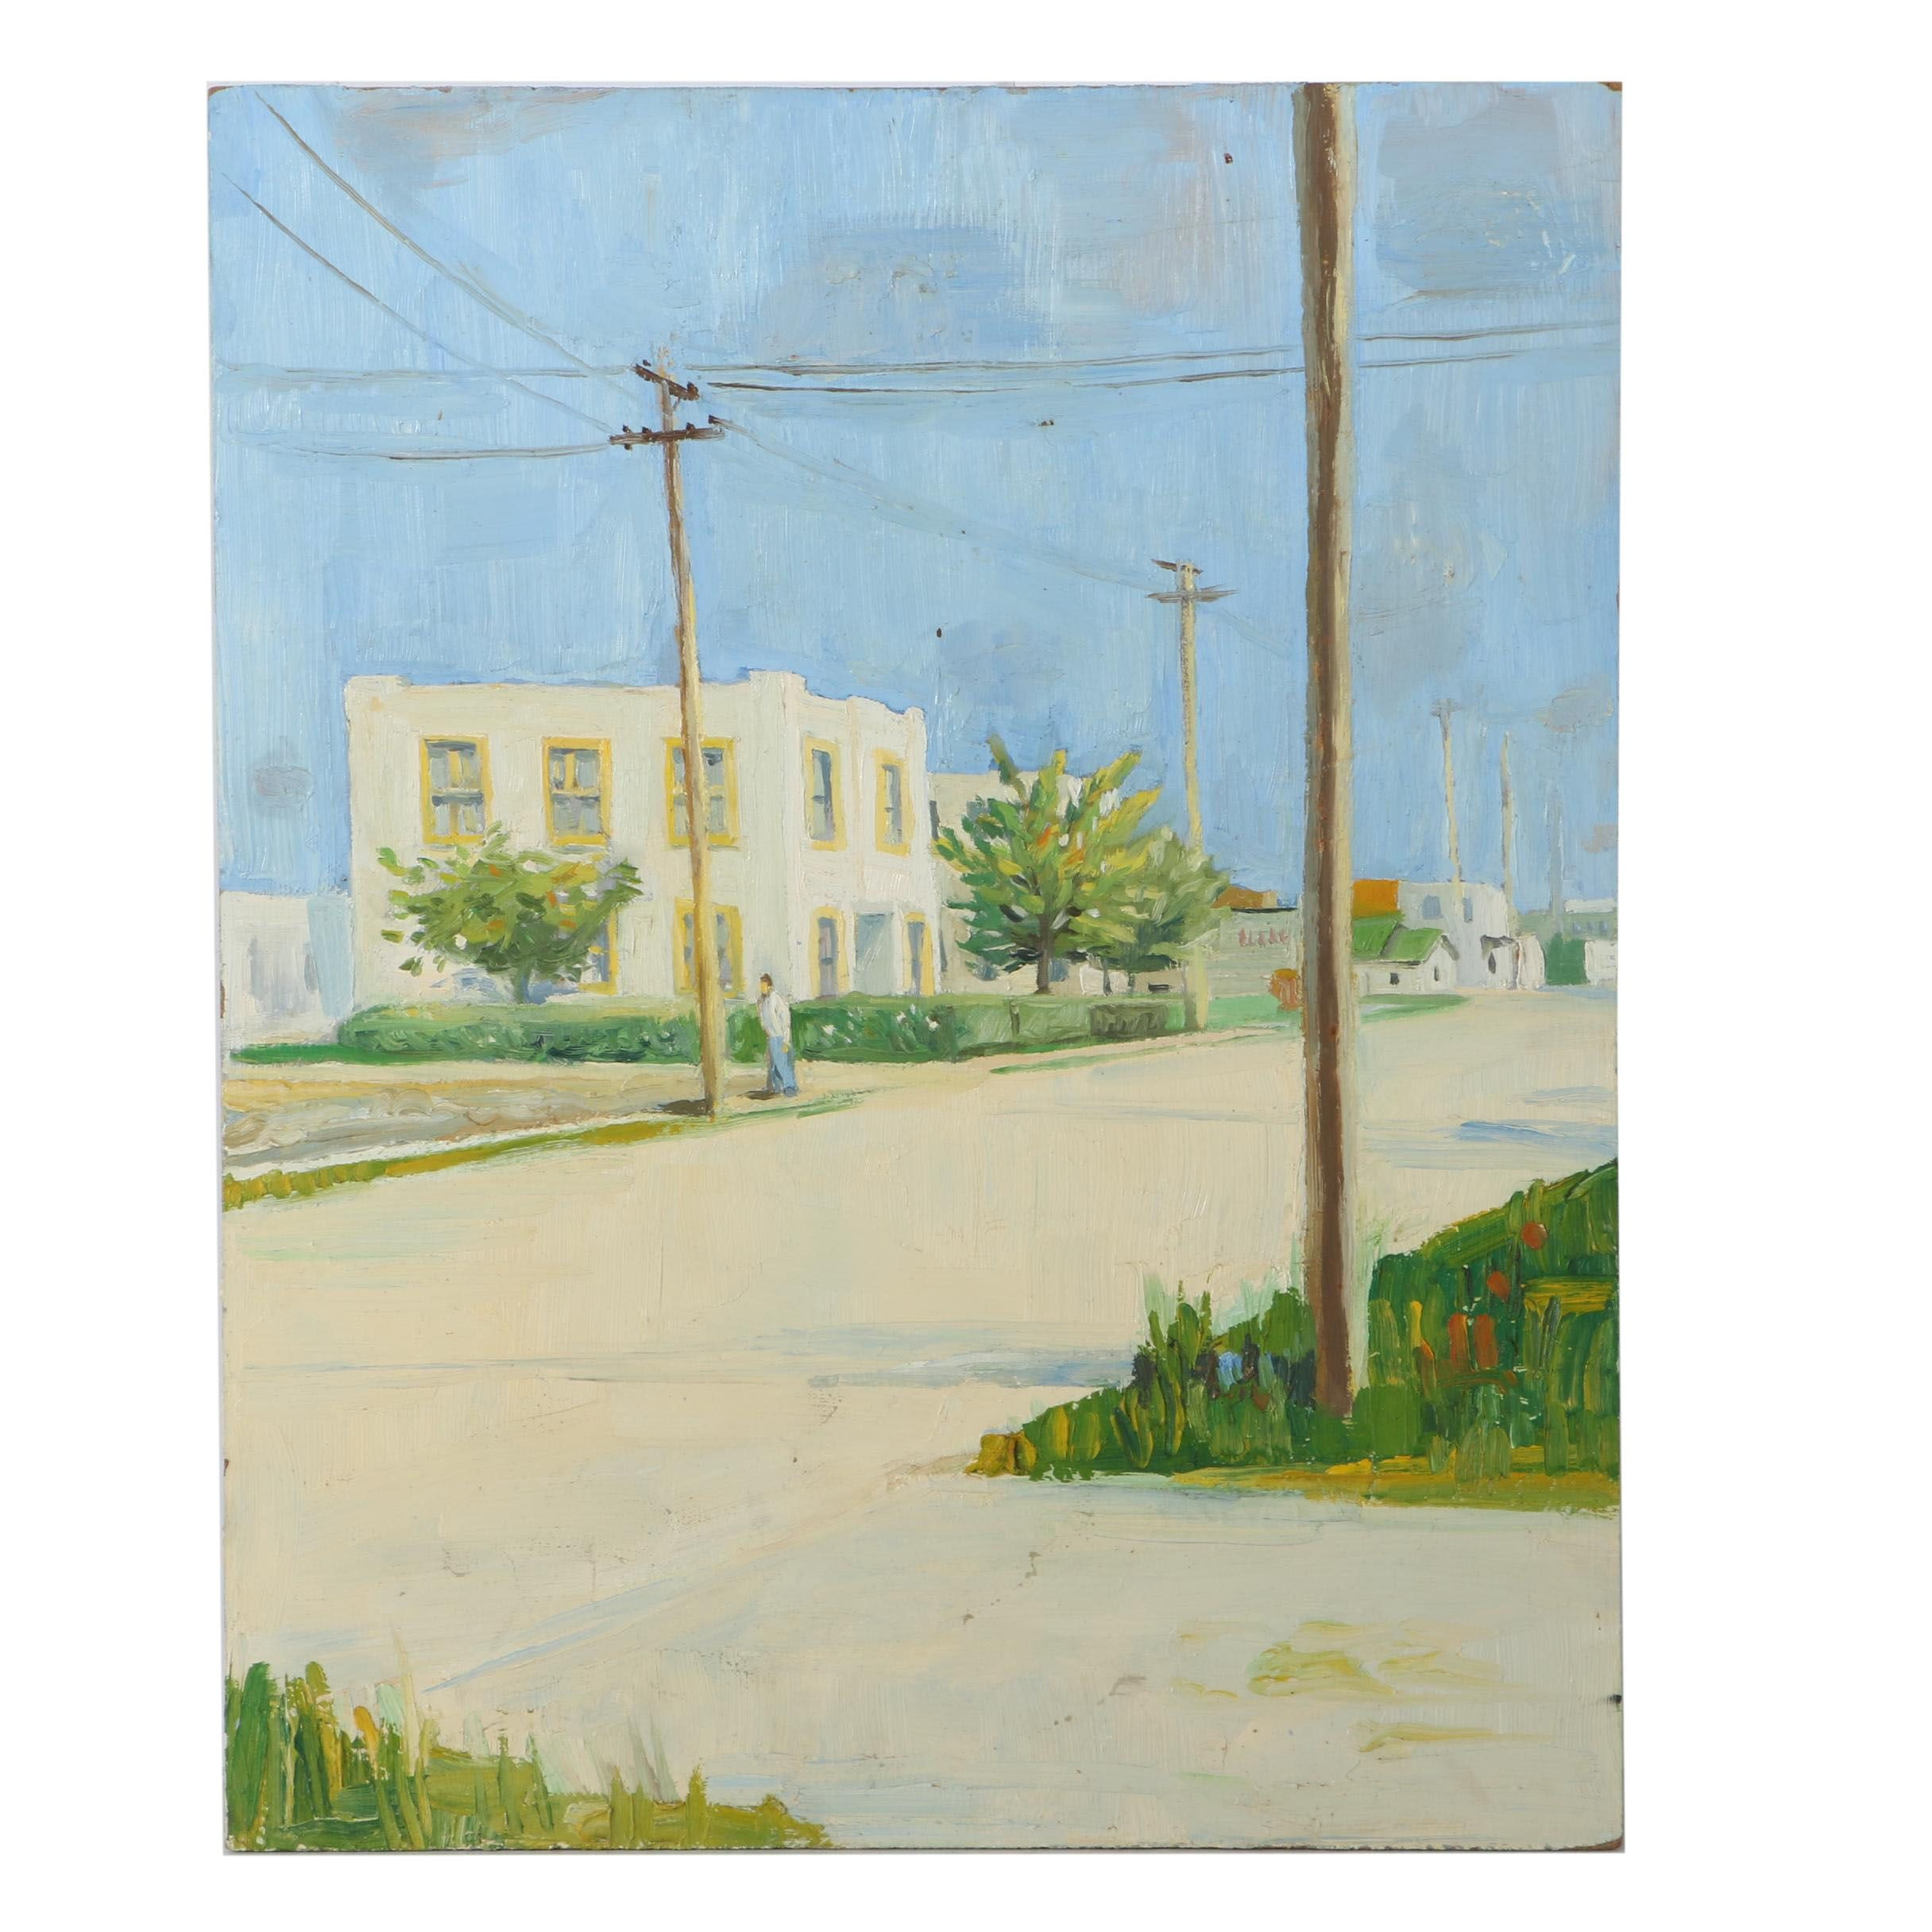 Oil Painting on Board of a City Street View